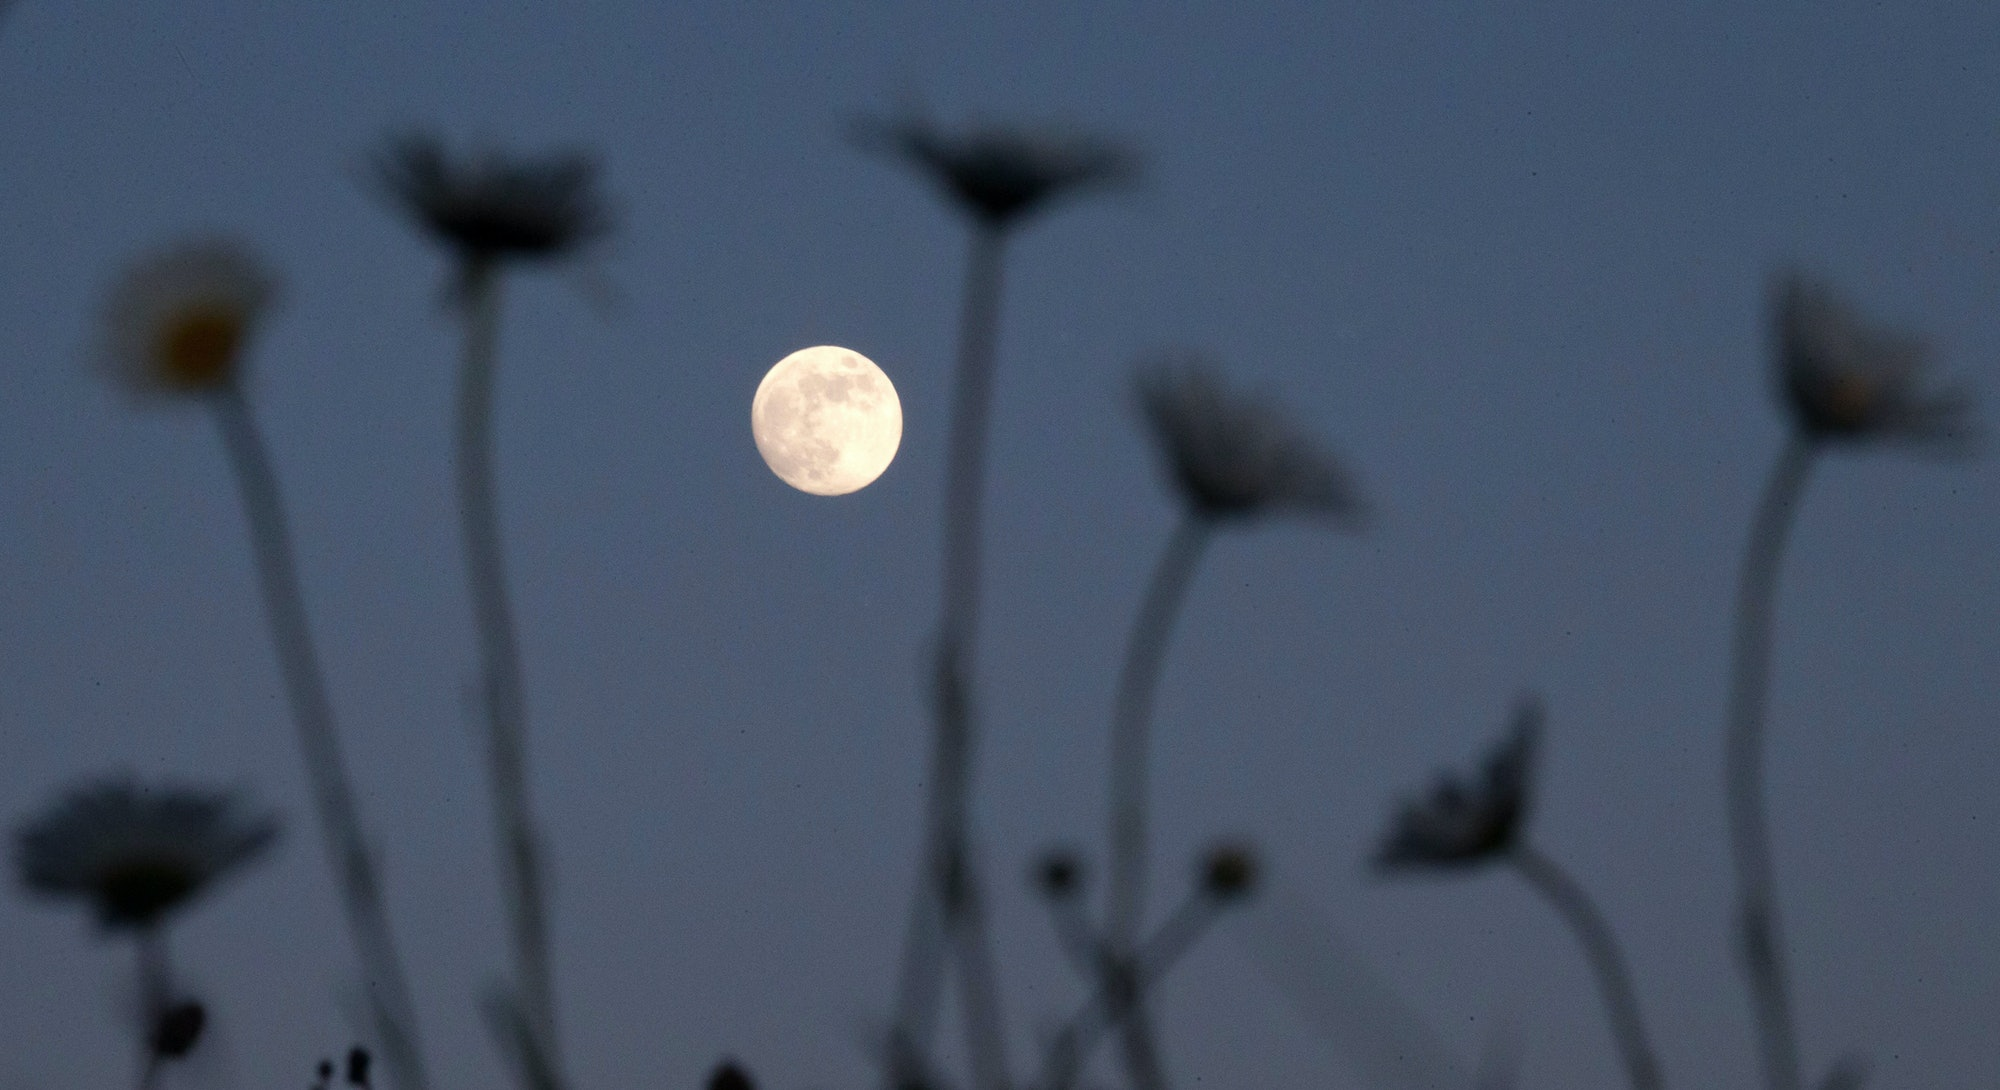 The May 2021 full moon on May 26 is the first eclipse of the year.